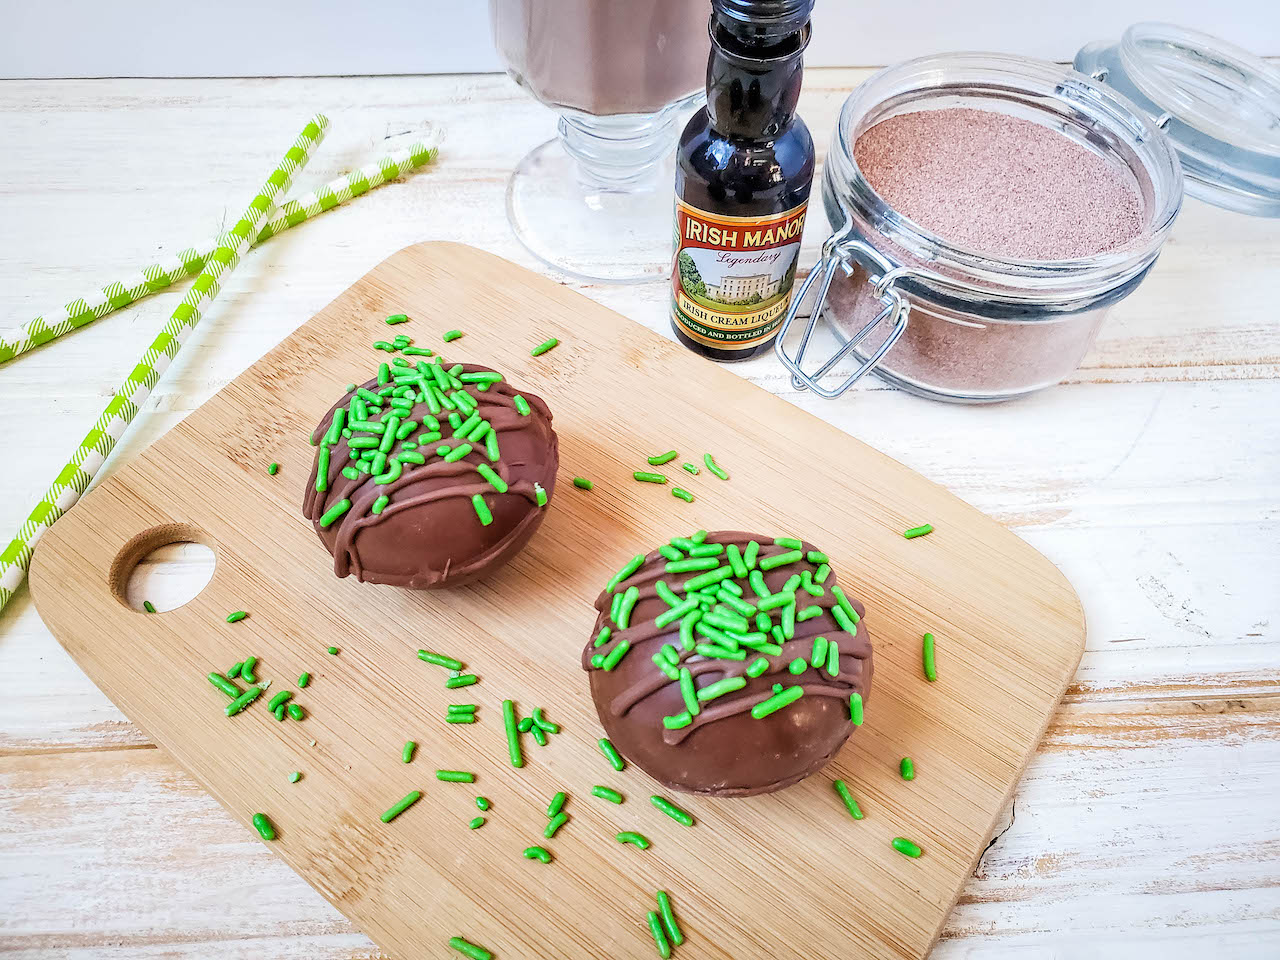 two hot cocoa bombs sitting on a wood cutting board with green sprinkles. A cup of hot cocoa, a bottle of Irish cream, and a glass jar of hot cocoa mix in the background, with two green striped straws